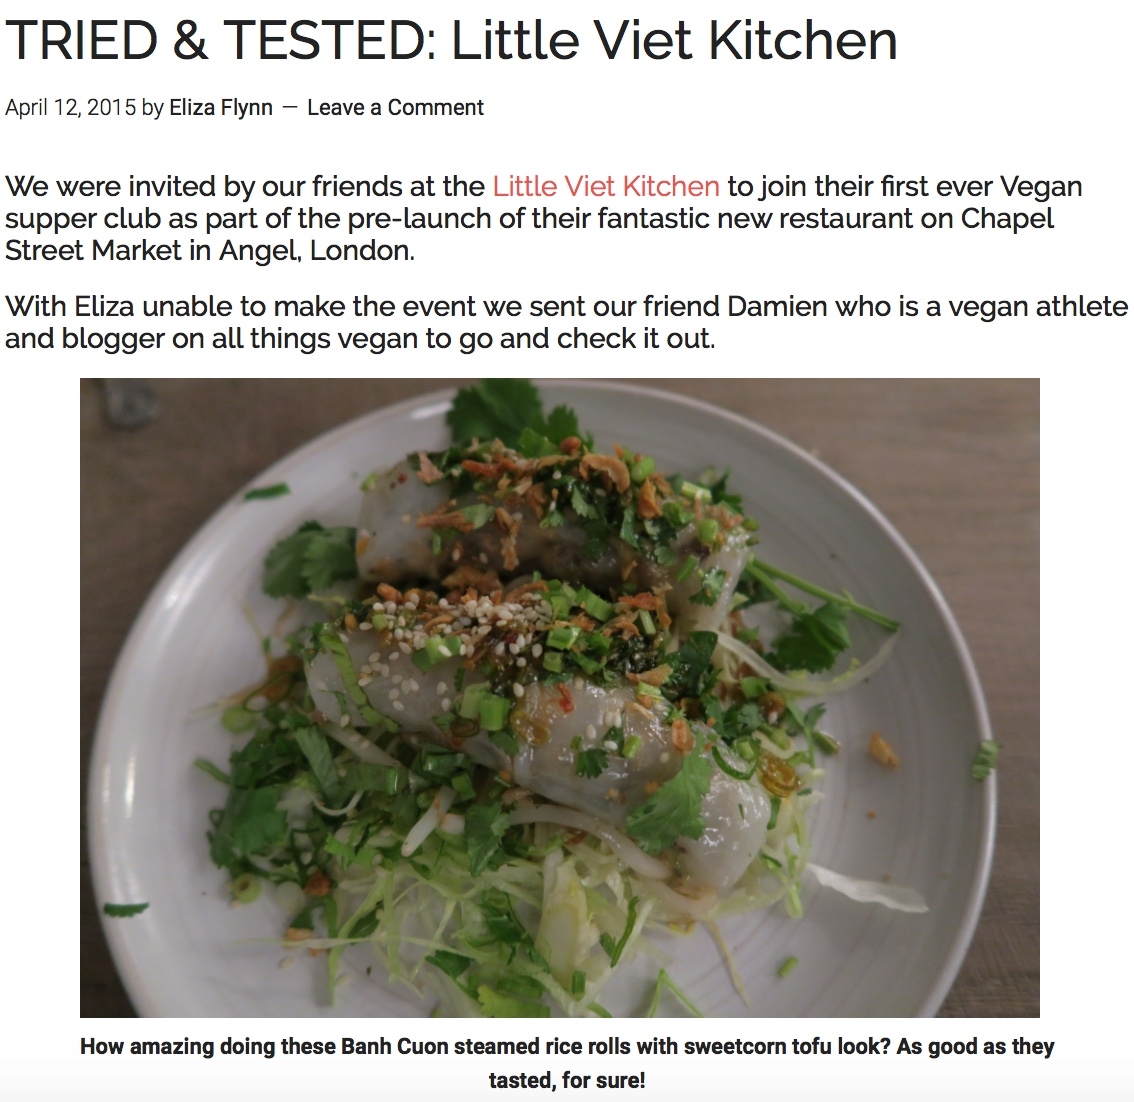 Healthy Living London's review of our Vegan Supperclub.  http://healthylivinglondon.com/london-health-fitness-reviews/tried-tested-little-viet-kitchen/